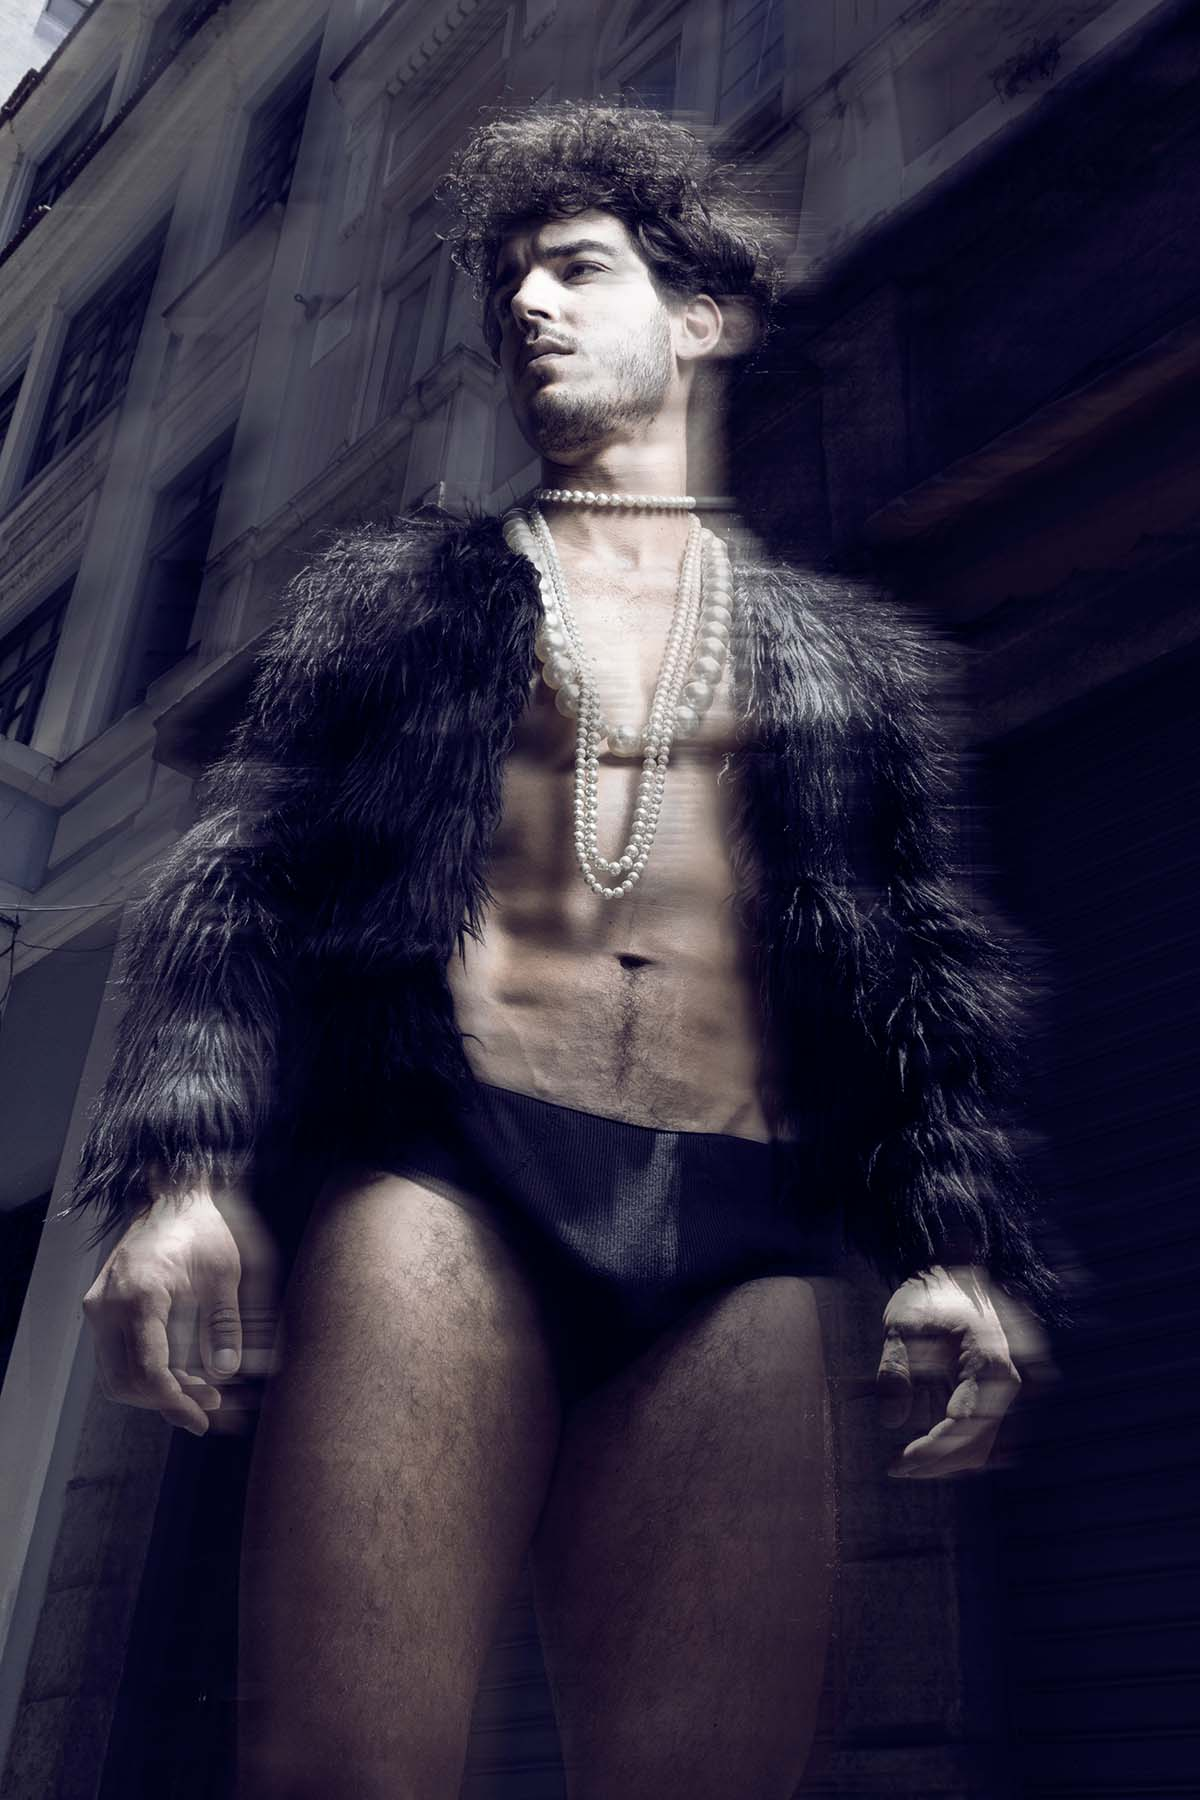 Bruno Brabieri by Matheus Muraca for Brazilian Male Model